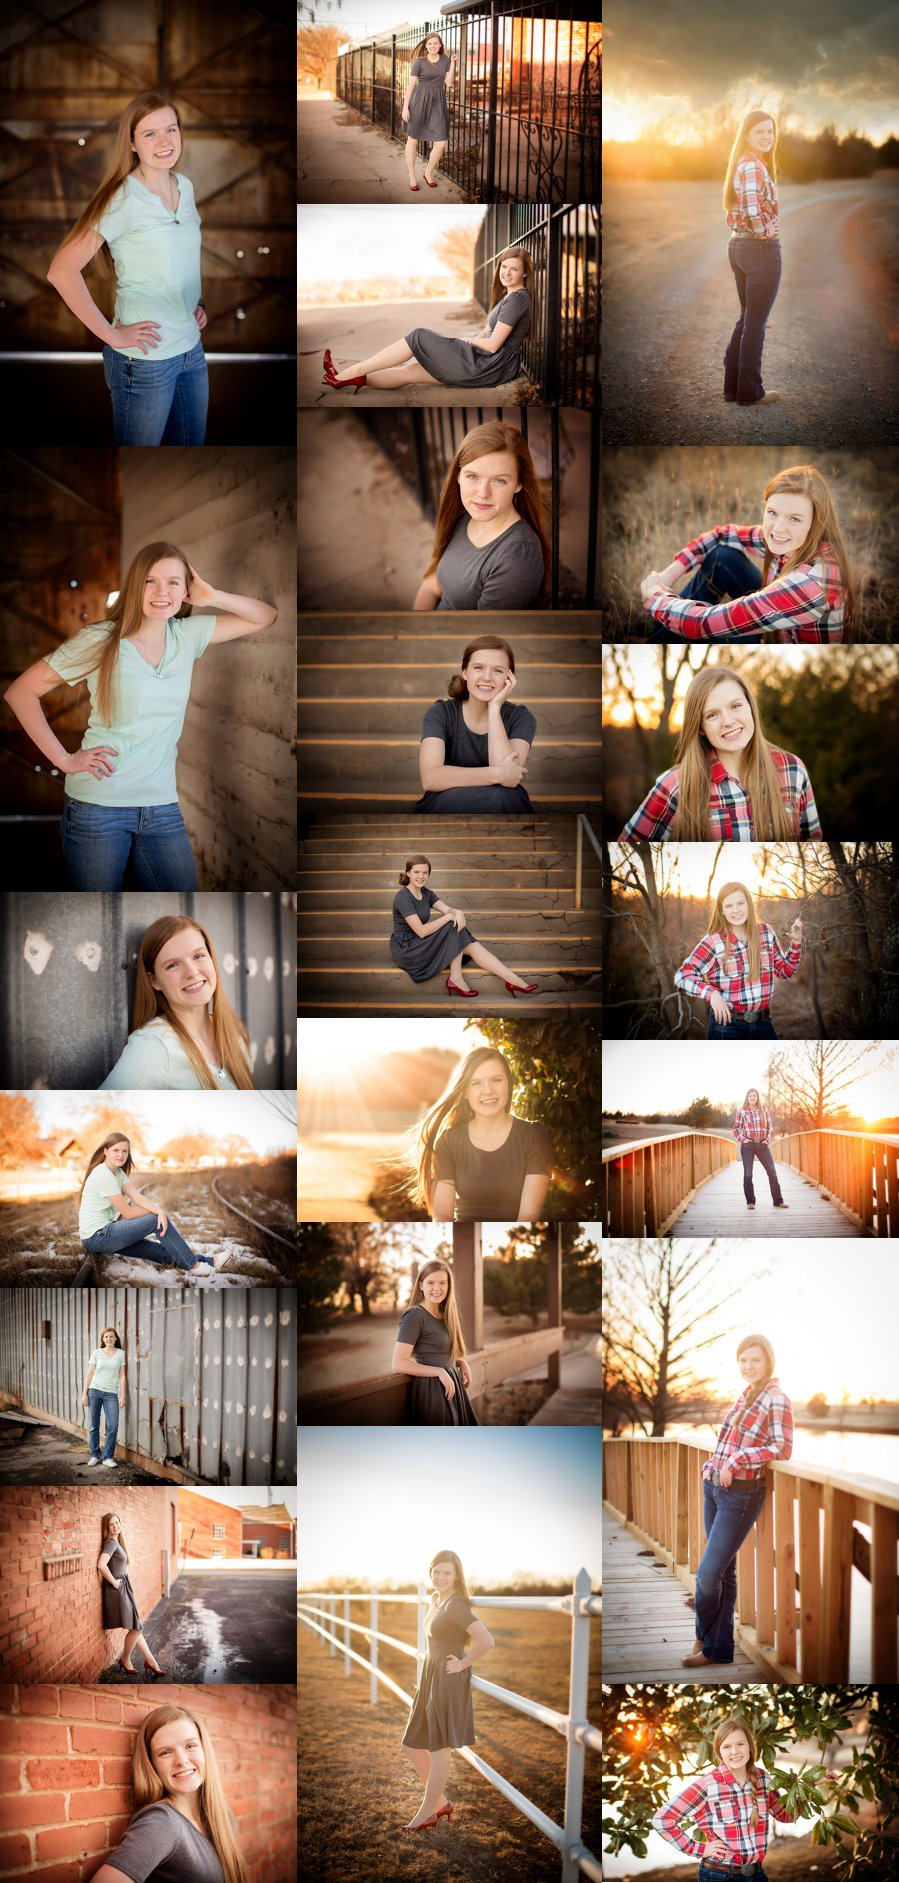 Northern Virginia Senior Photography. Winchester VA Senior Photographer. Senior Girl Poses. Outdoor senior girl portraits. www.kensiem.com | Northern Virginia Photographer